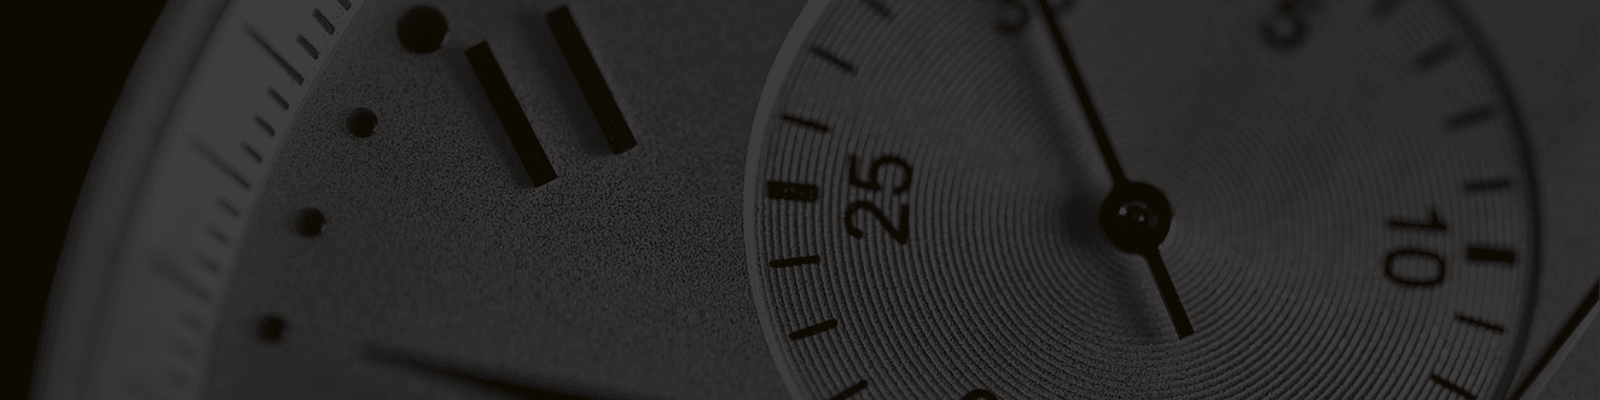 Warranty Infomation banner, close up of watch